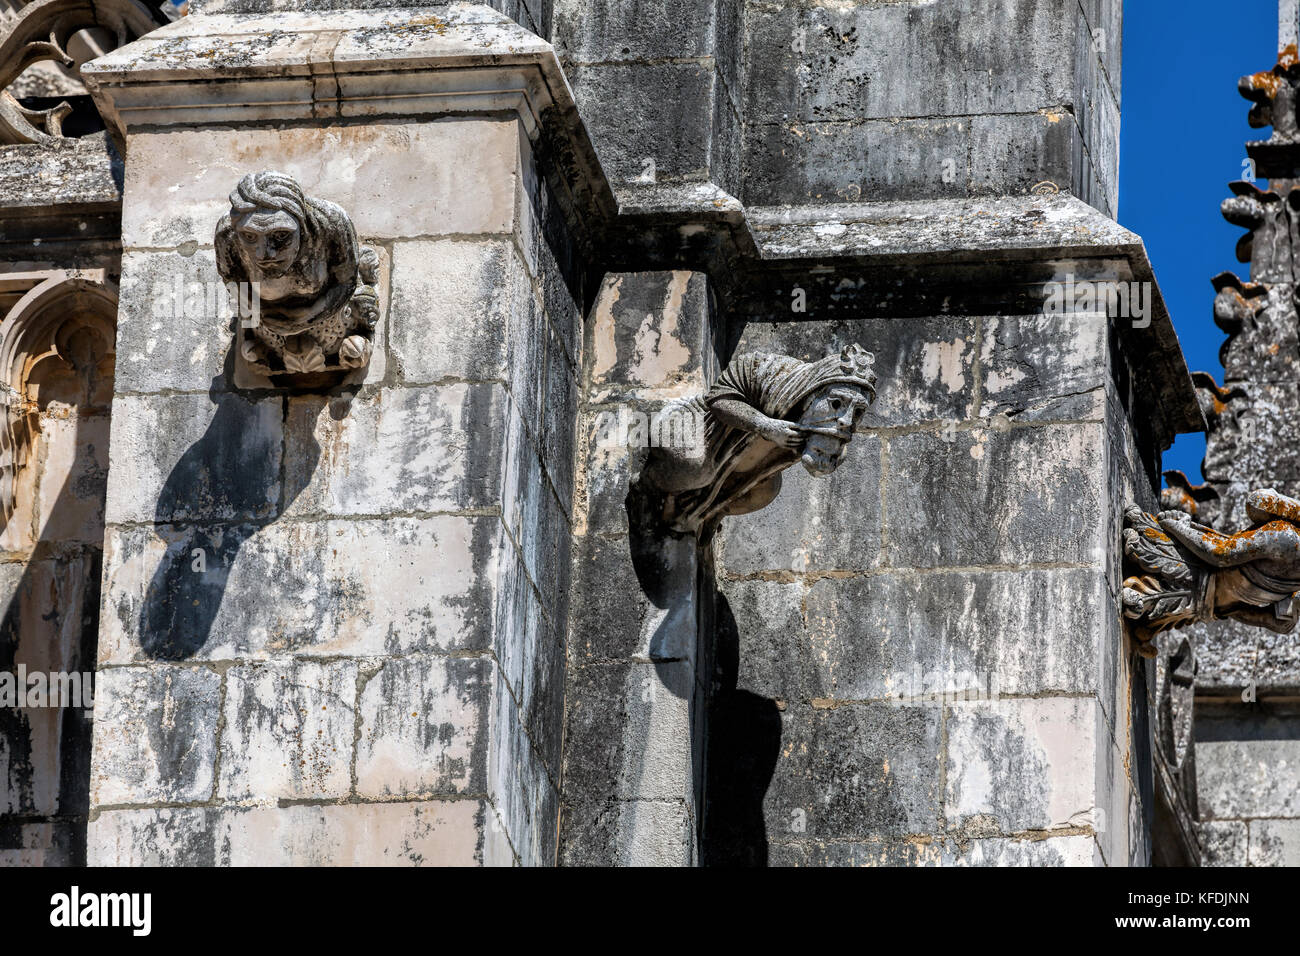 Gargoyles on the facade of the 14th century Batalha Monastery in Batalha, Portugal, a prime example of Portuguese - Stock Image